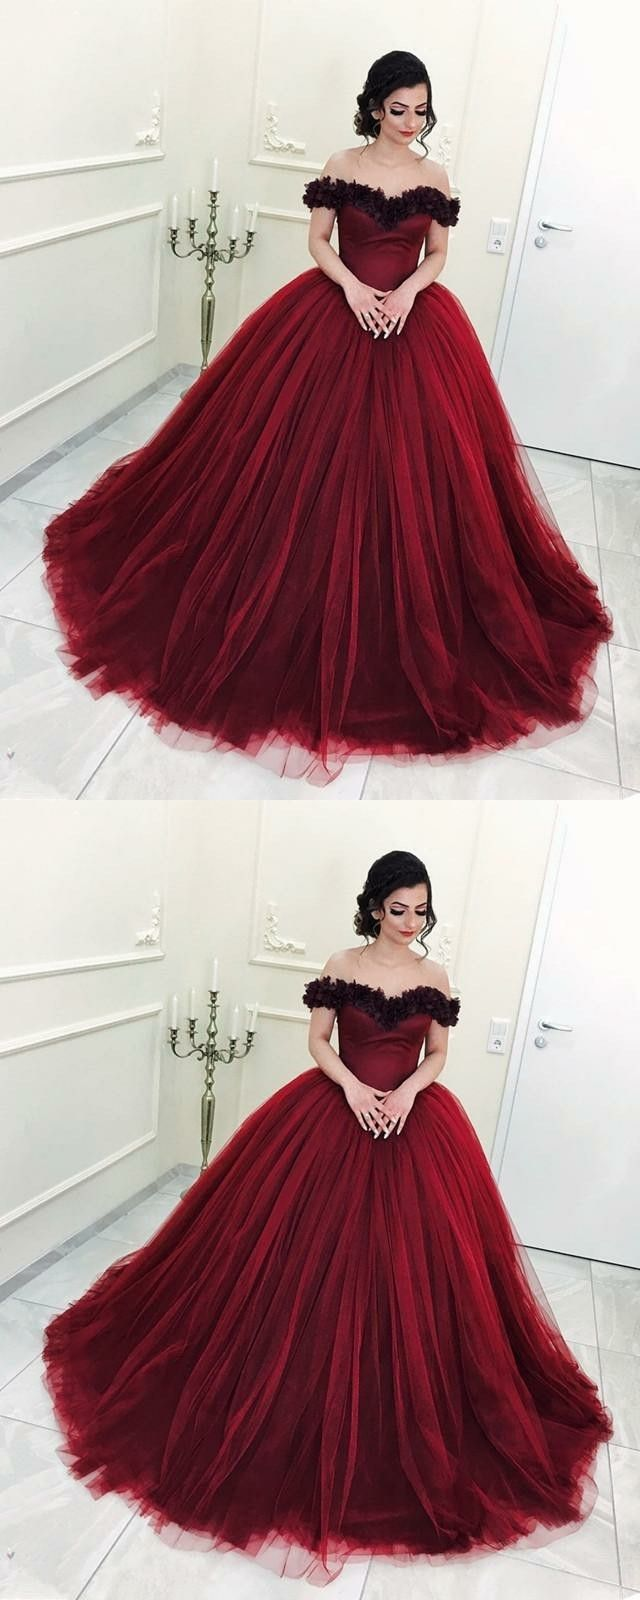 dreamy off shoulder ball gowns for prom party, burgundy quinceanera dresses with appliques.